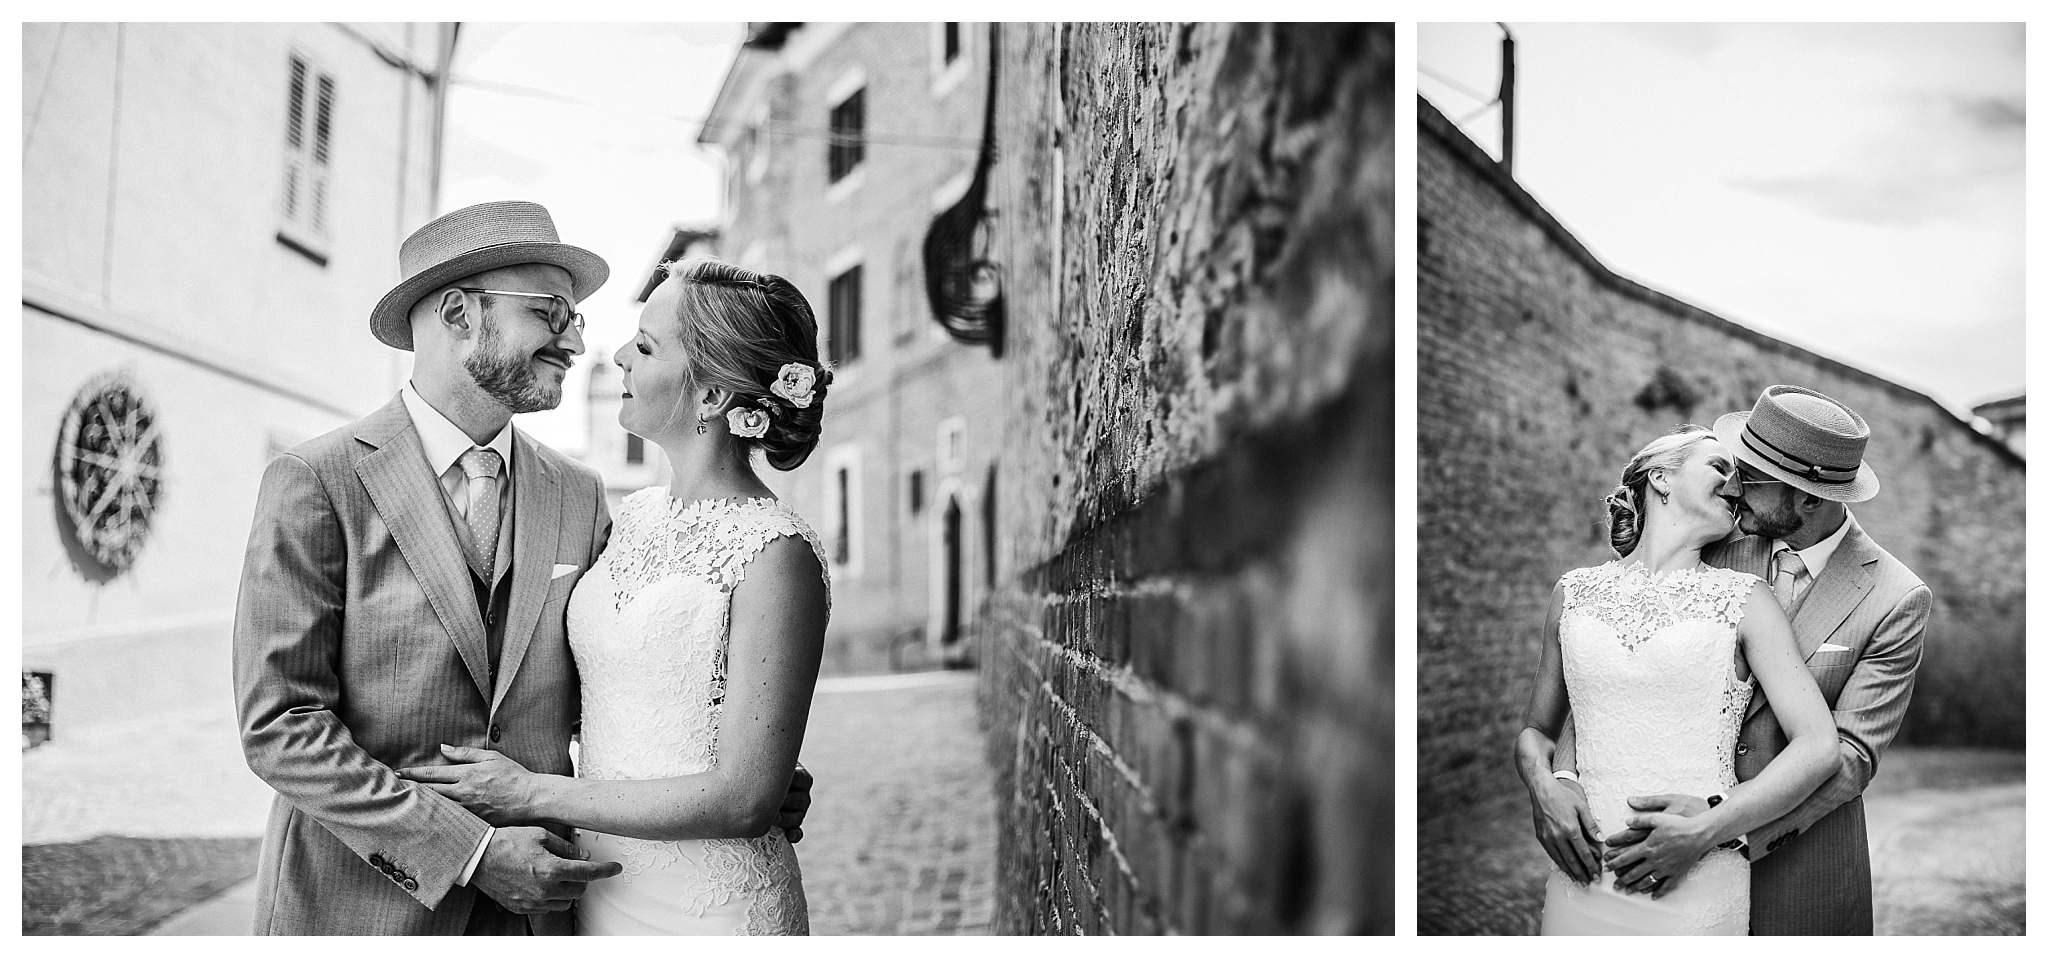 Bride and groom having their wedding photo shoot in Mombaruzzo, Italy